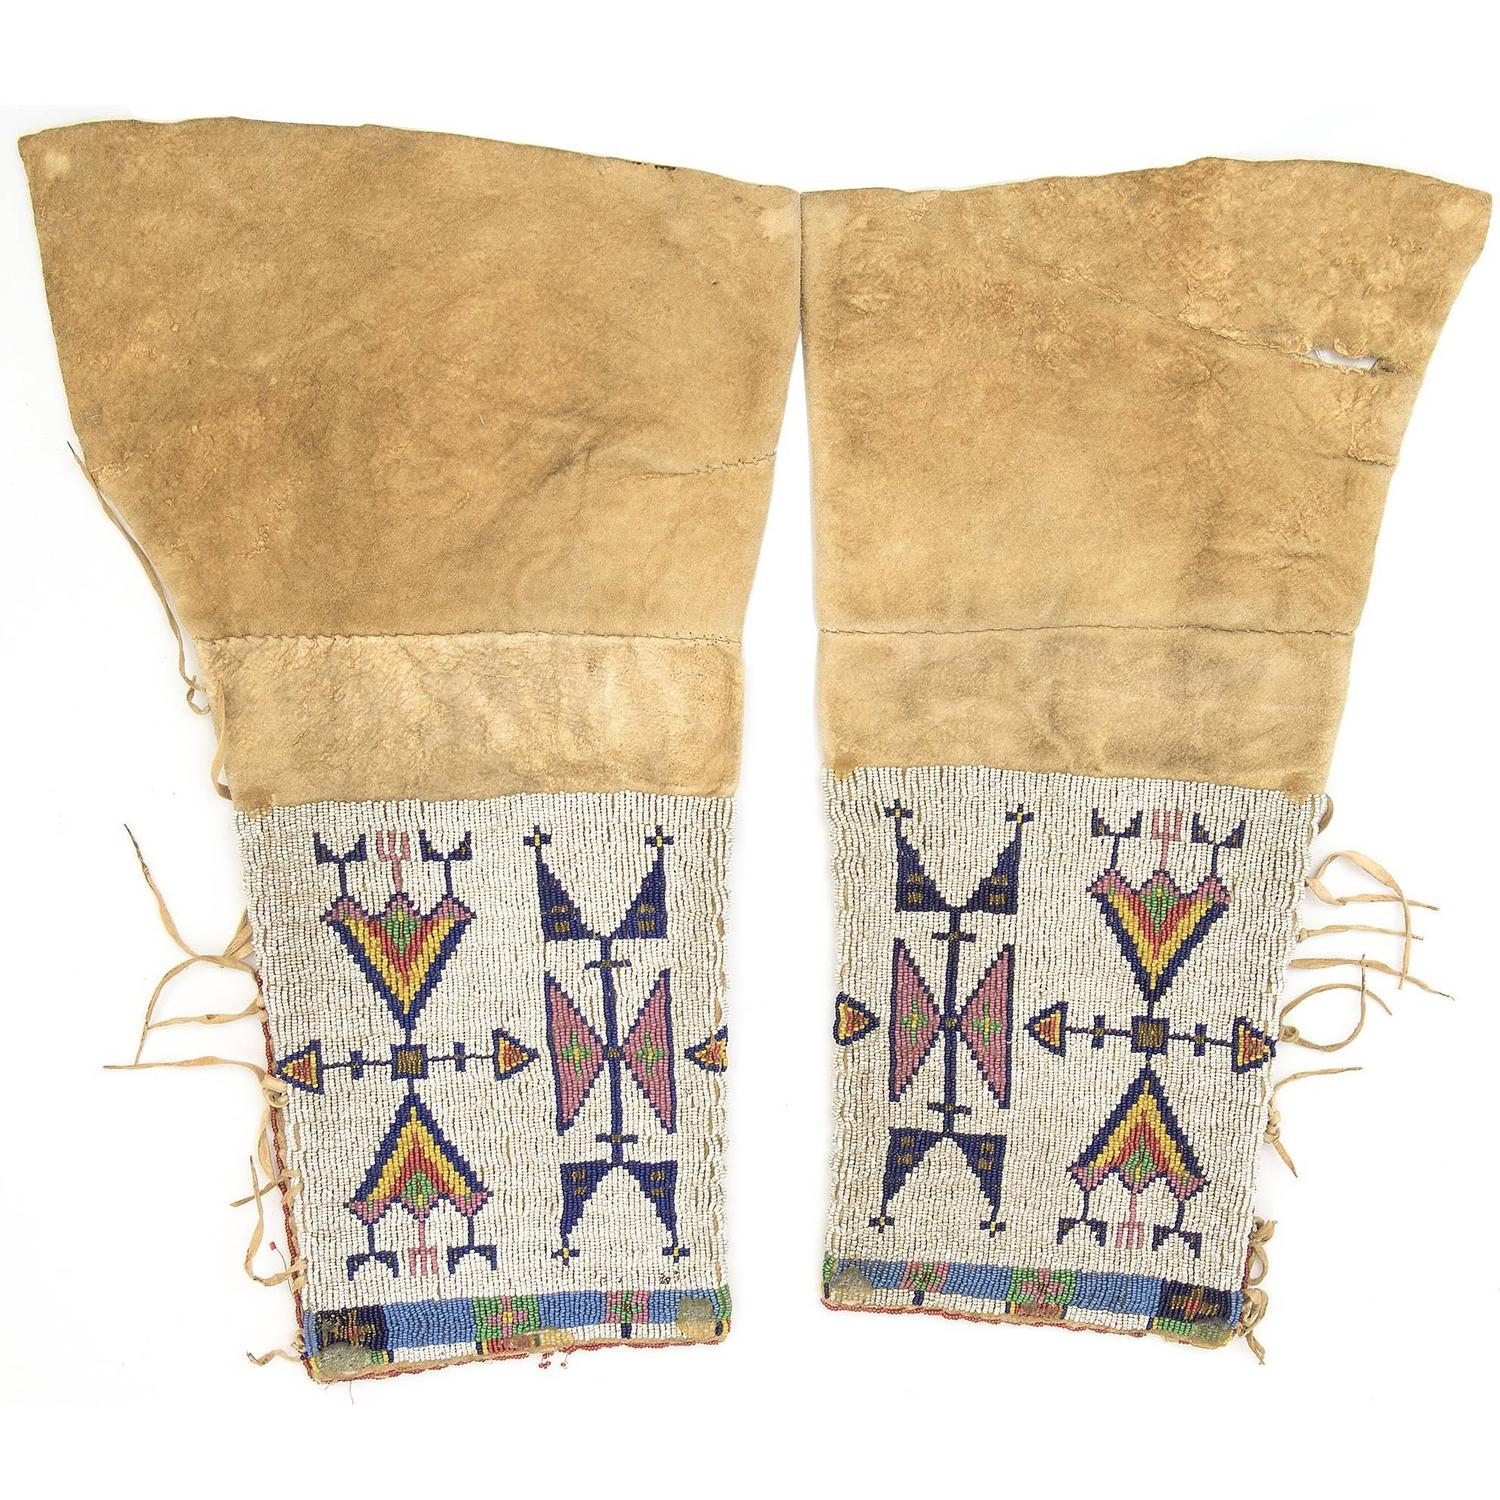 Sioux Indian Art Folk Art - 22 For Sale at 1stdibs